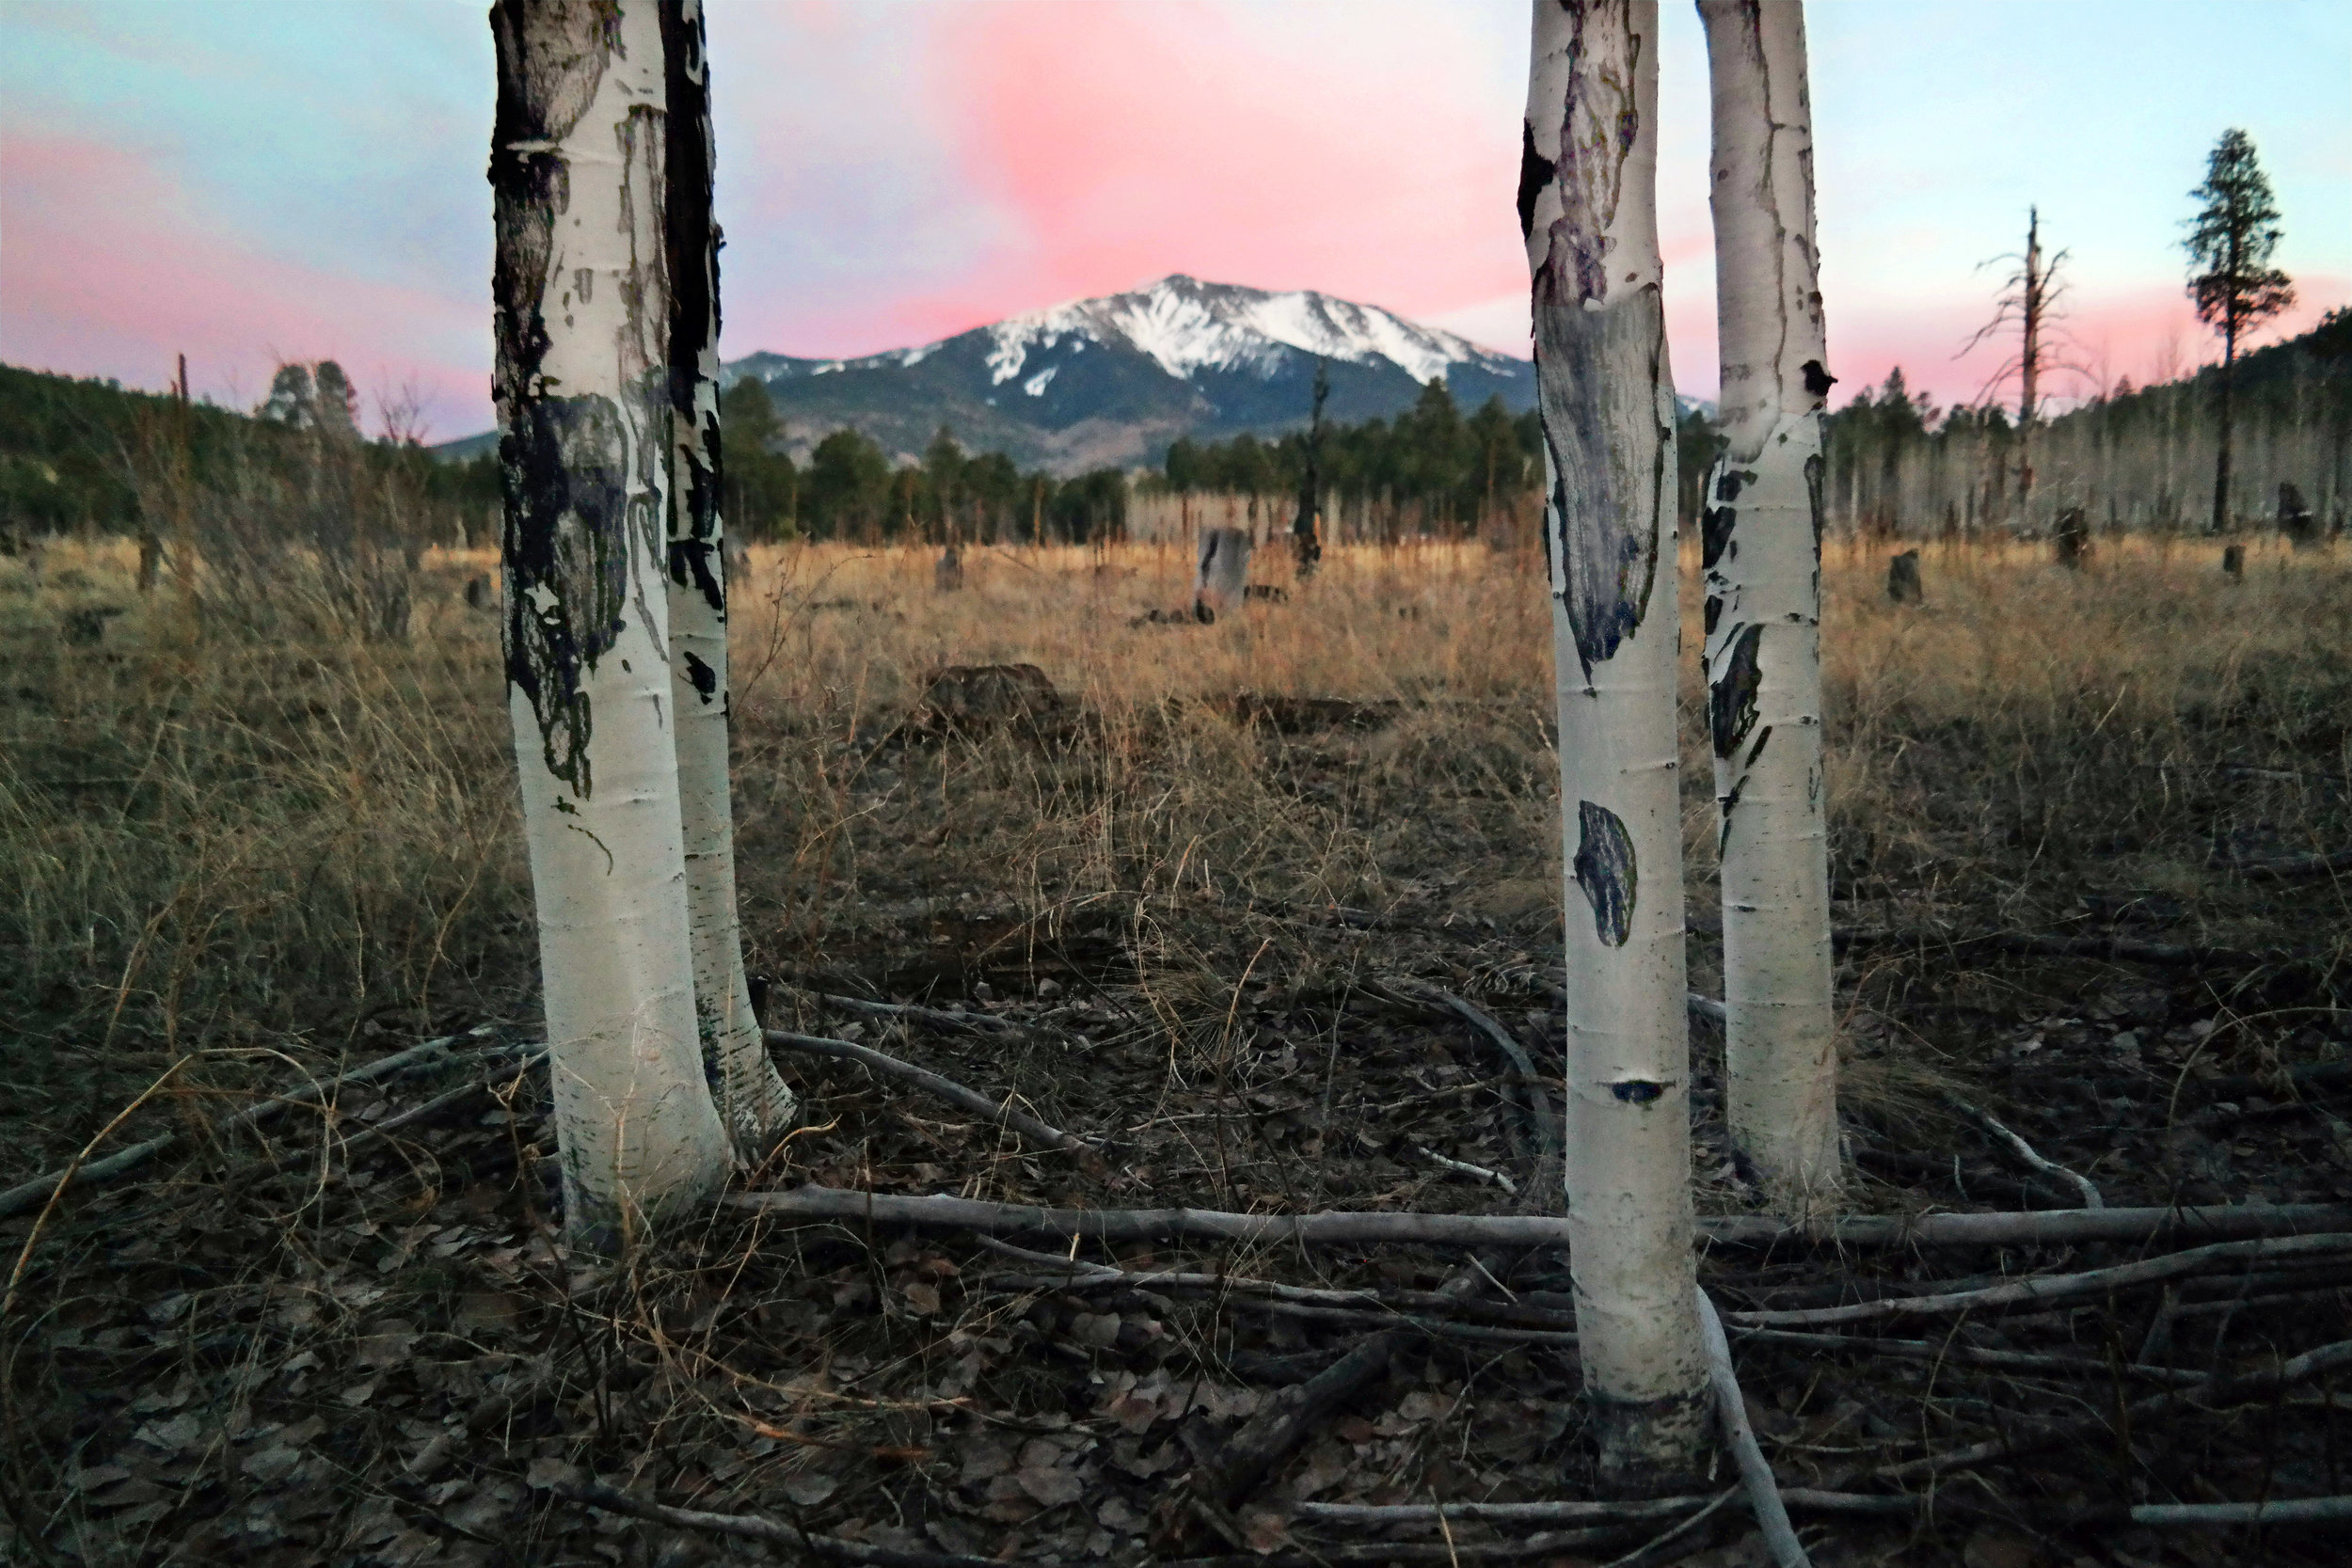 Sunset at Kendrick Park over the San Franciso Peaks, Flagstaff, AZ